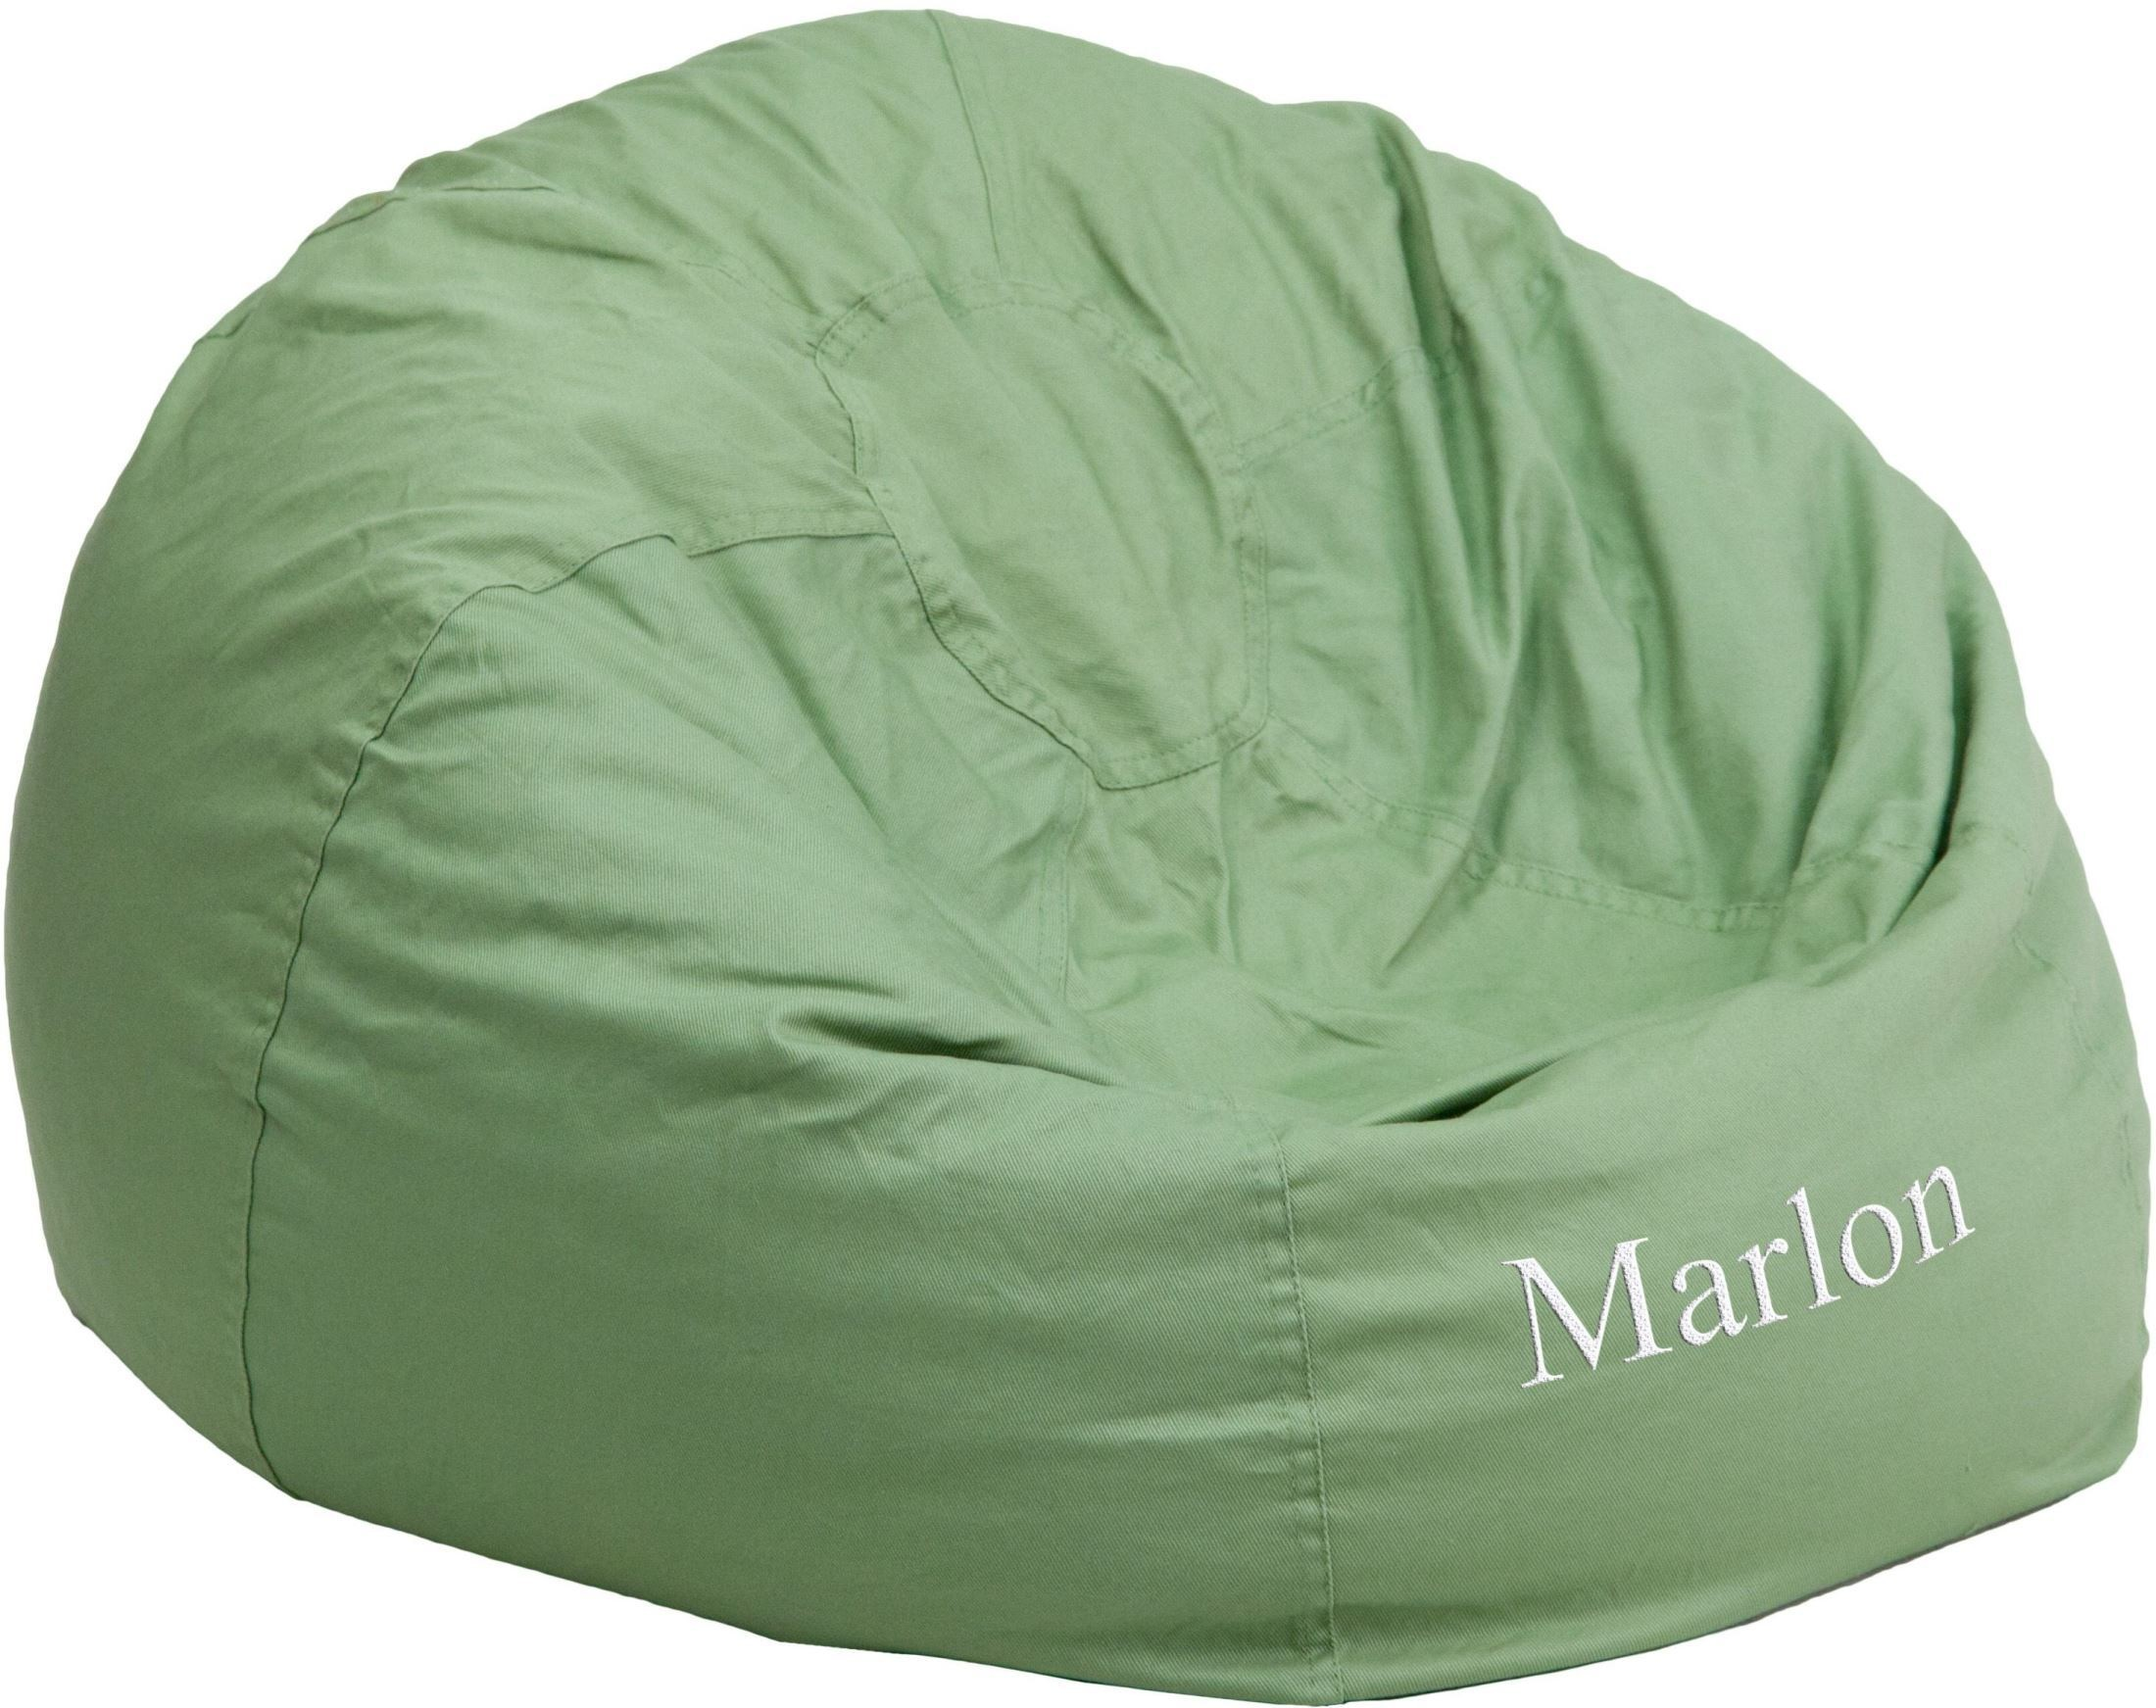 personalized oversized solid green bean bag chair with